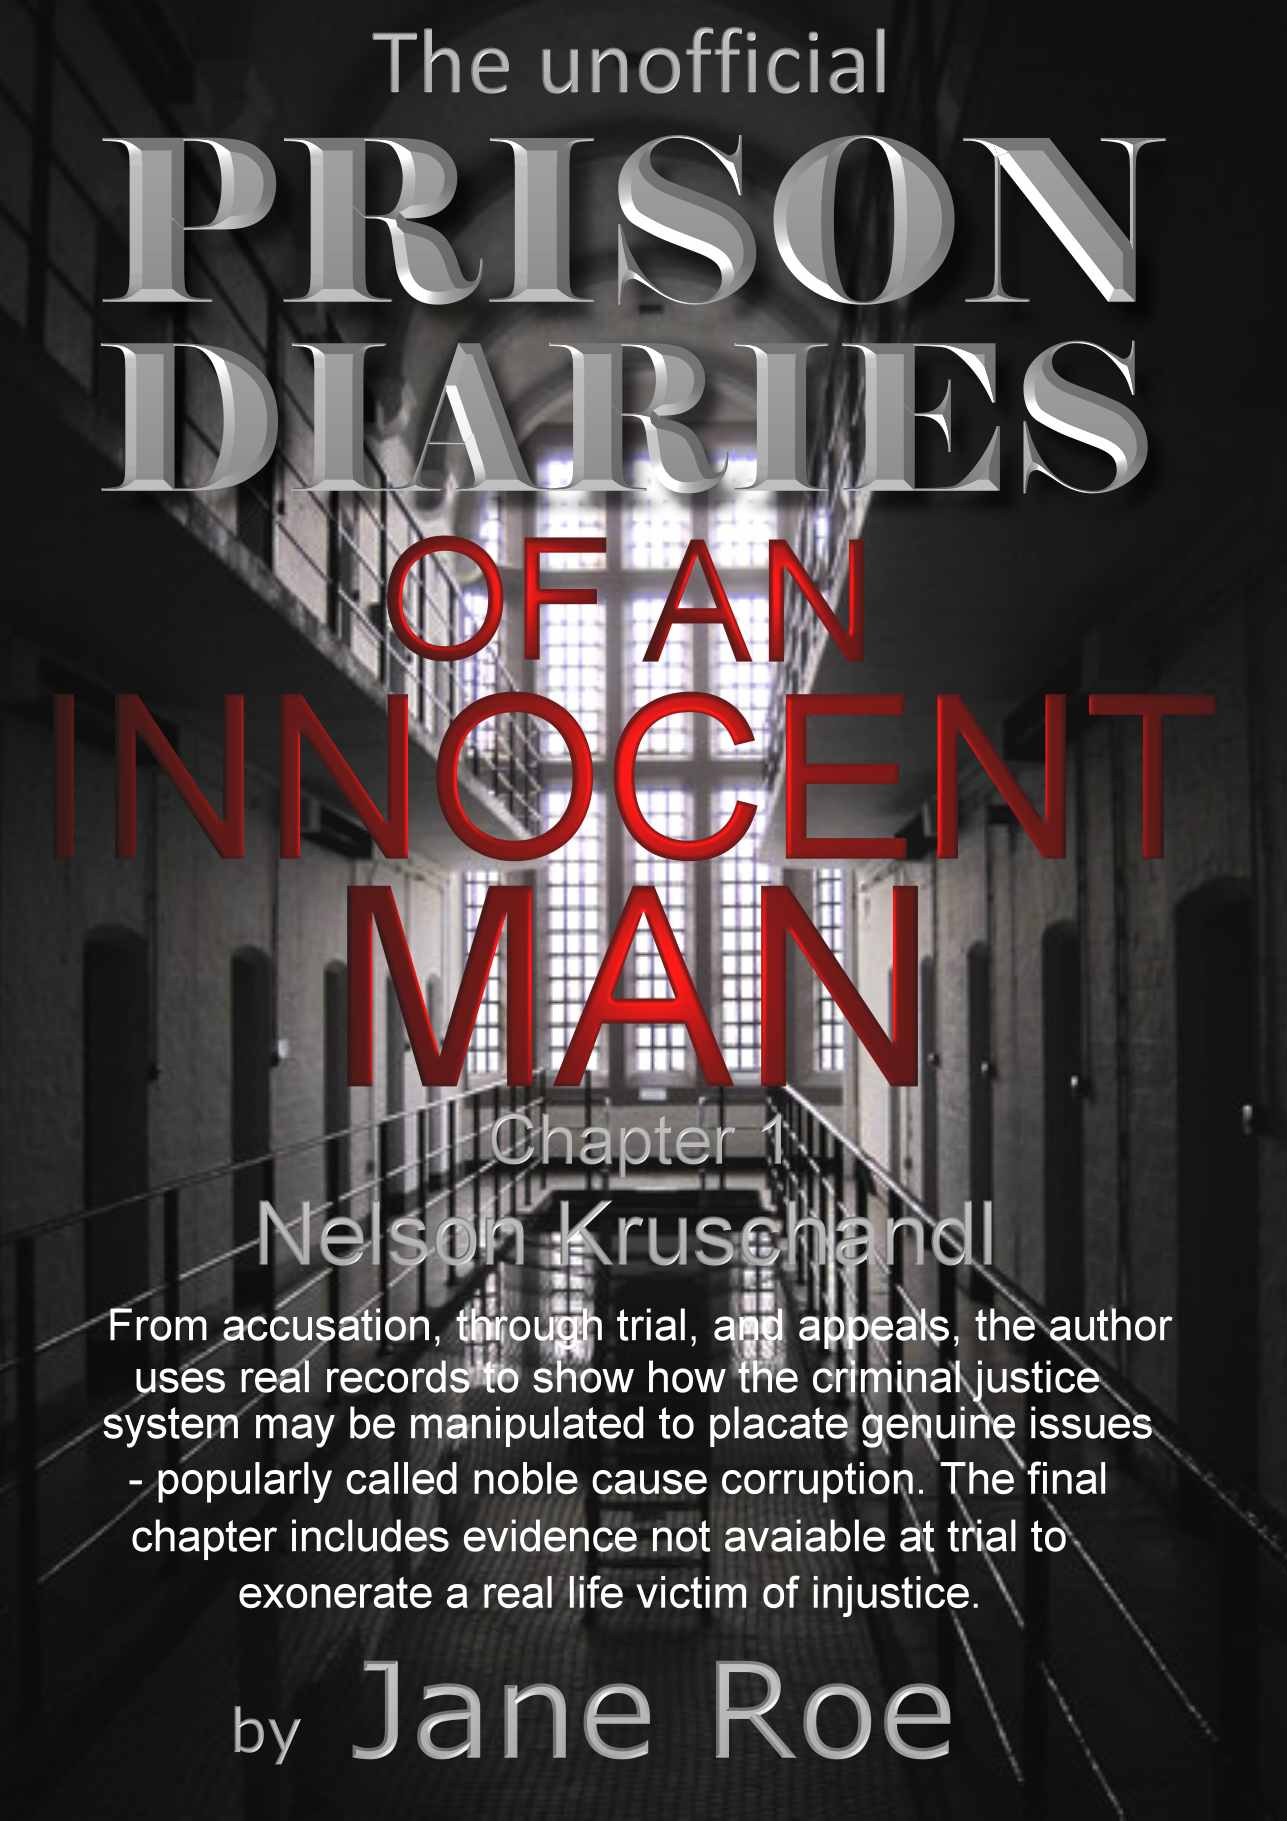 The Unofficial Prison Diaries, An Innocent Man, Nelson Kruschandl - by Jane Roe